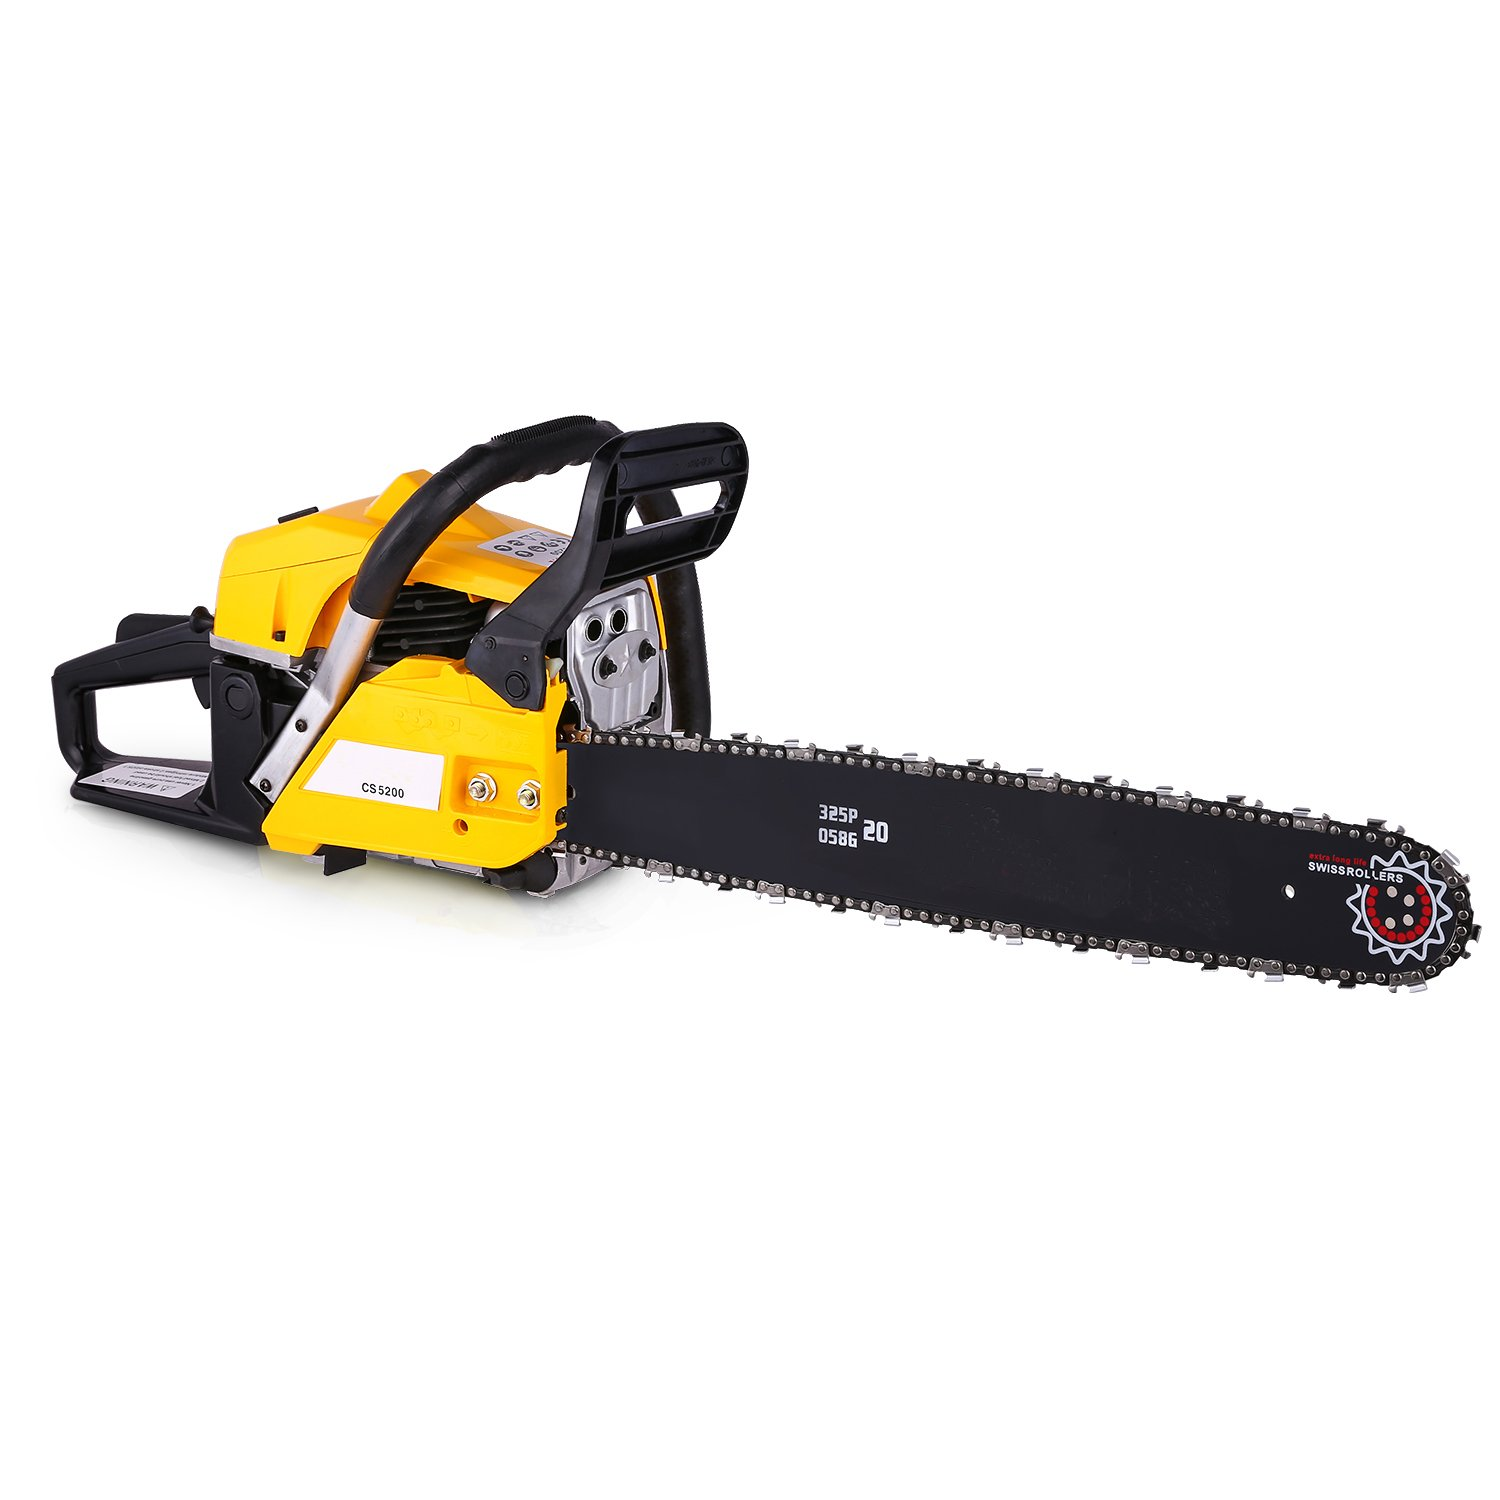 Korie 20-Inch 58cc Petrol Chainsaw - 3.4HP, 2-Stroke Gas Powered Chainsaw with Tool Bag- Cutting Wood Chainsaw for Farm, Garden and Ranch(US Stock) (52cc-Yellow)